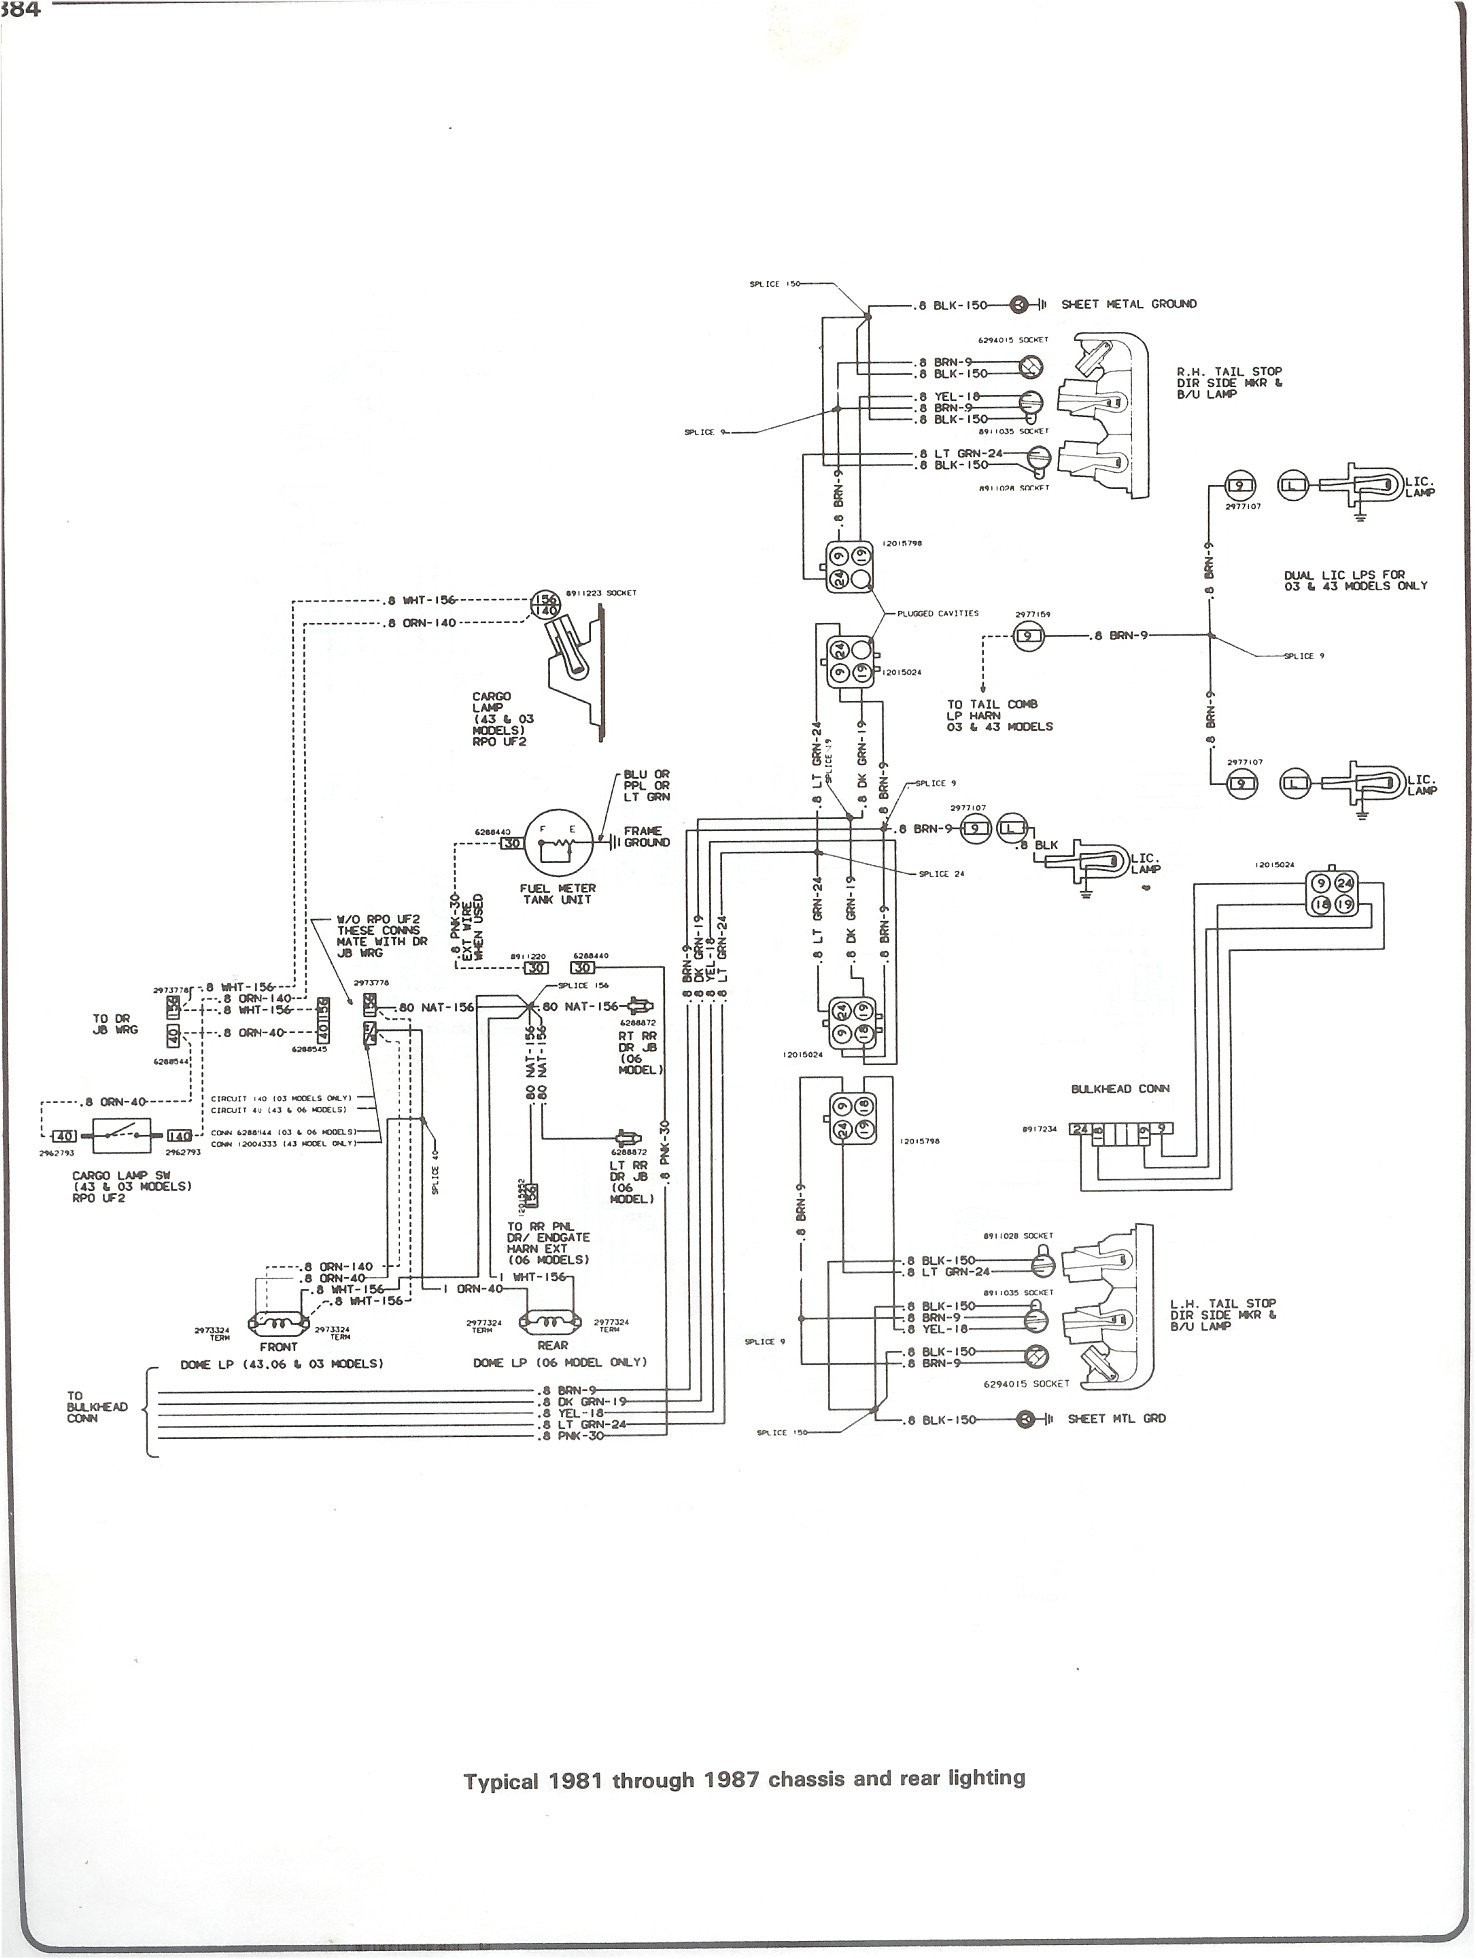 94 Chevy Horn Wiring Smart Diagrams Cavalier Diagram Private Sharing About U2022 Rh Caraccessoriesandsoftware Co Uk 4x4 95 Truck